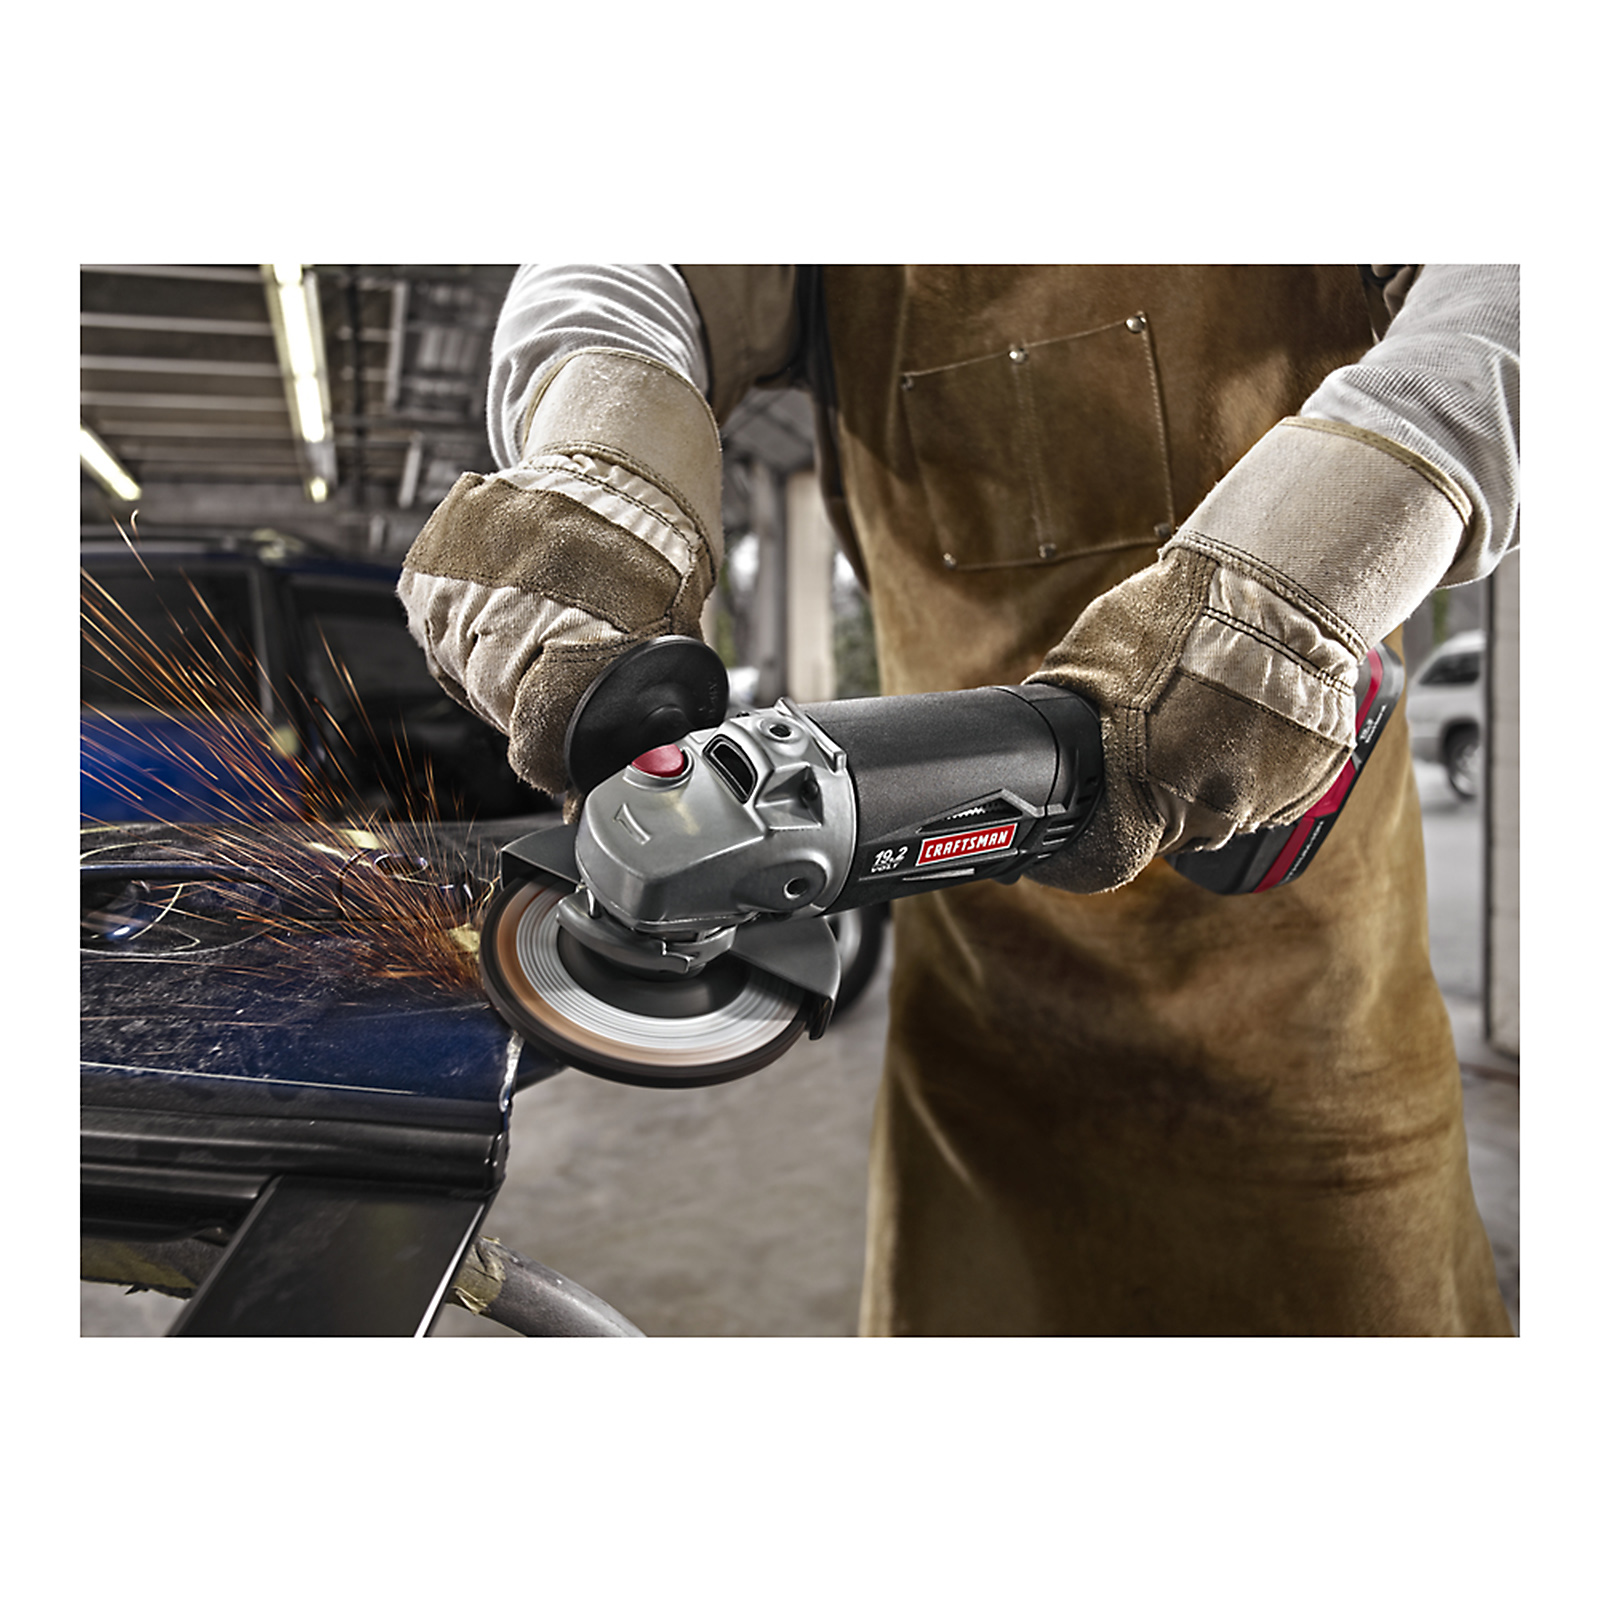 """Craftsman C3 Lithium-Ion 1/2"""" Impact Wrench and Angle Grinder Kit"""